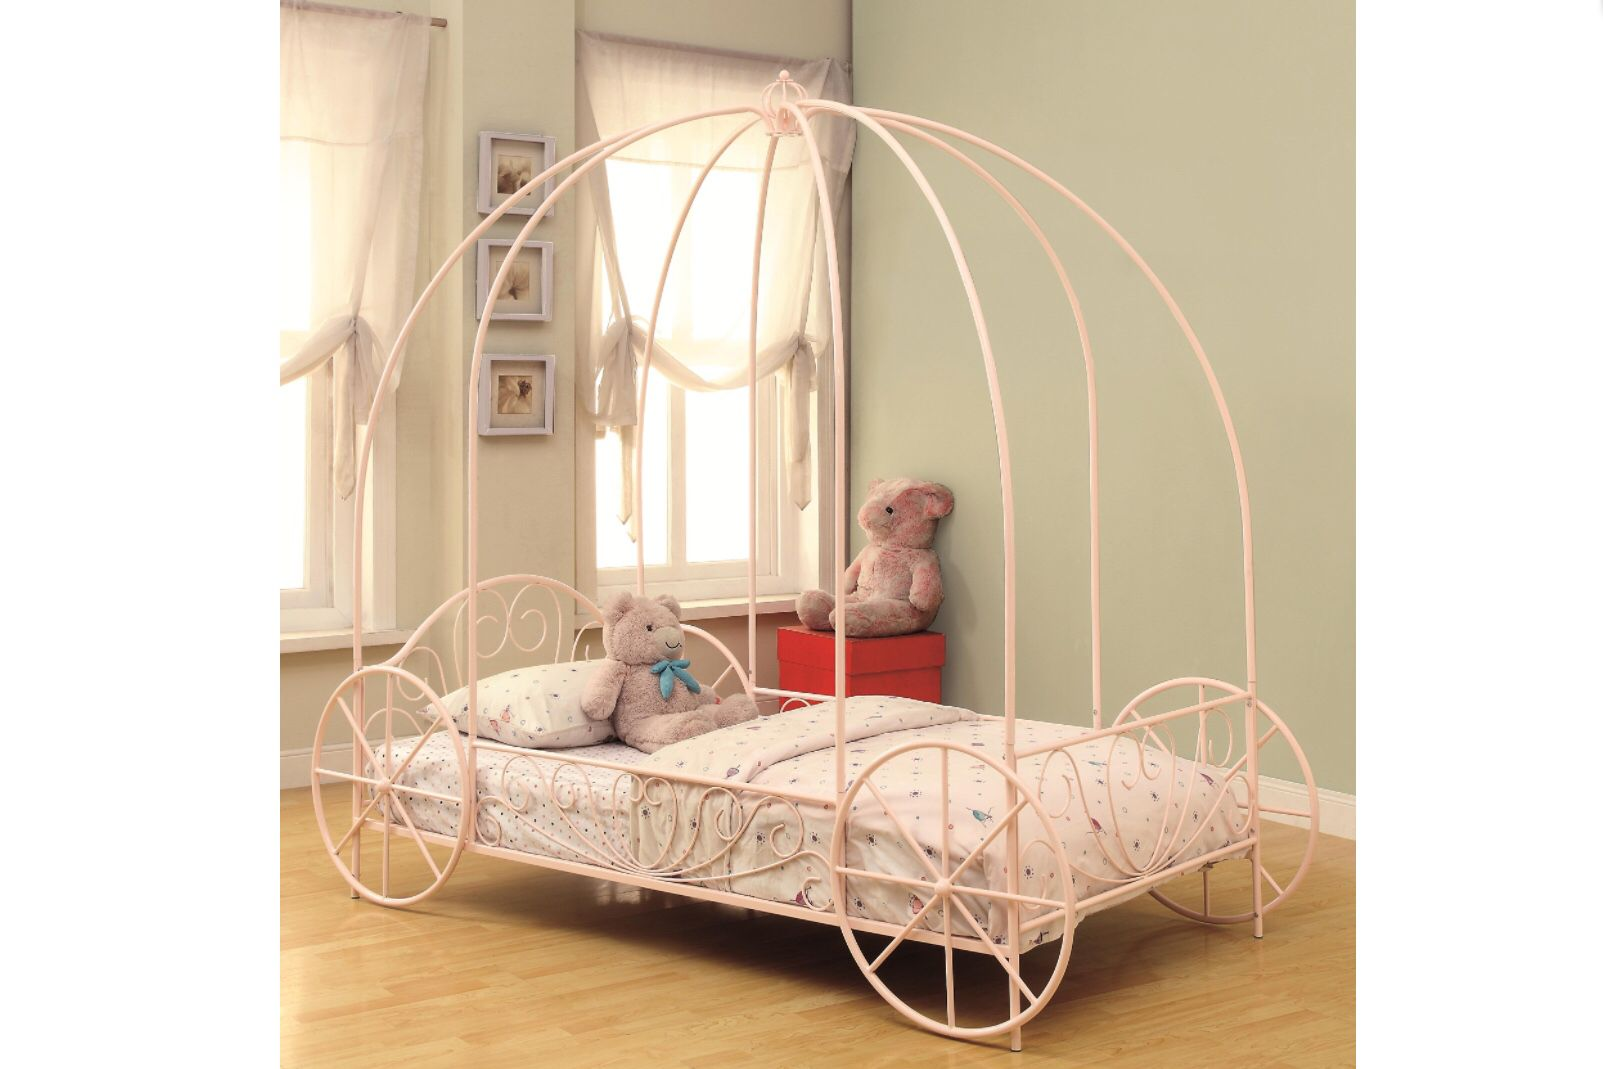 Iron Twin Canopy Carriage Bed  To order call The Sleep Center at 706-850-1665